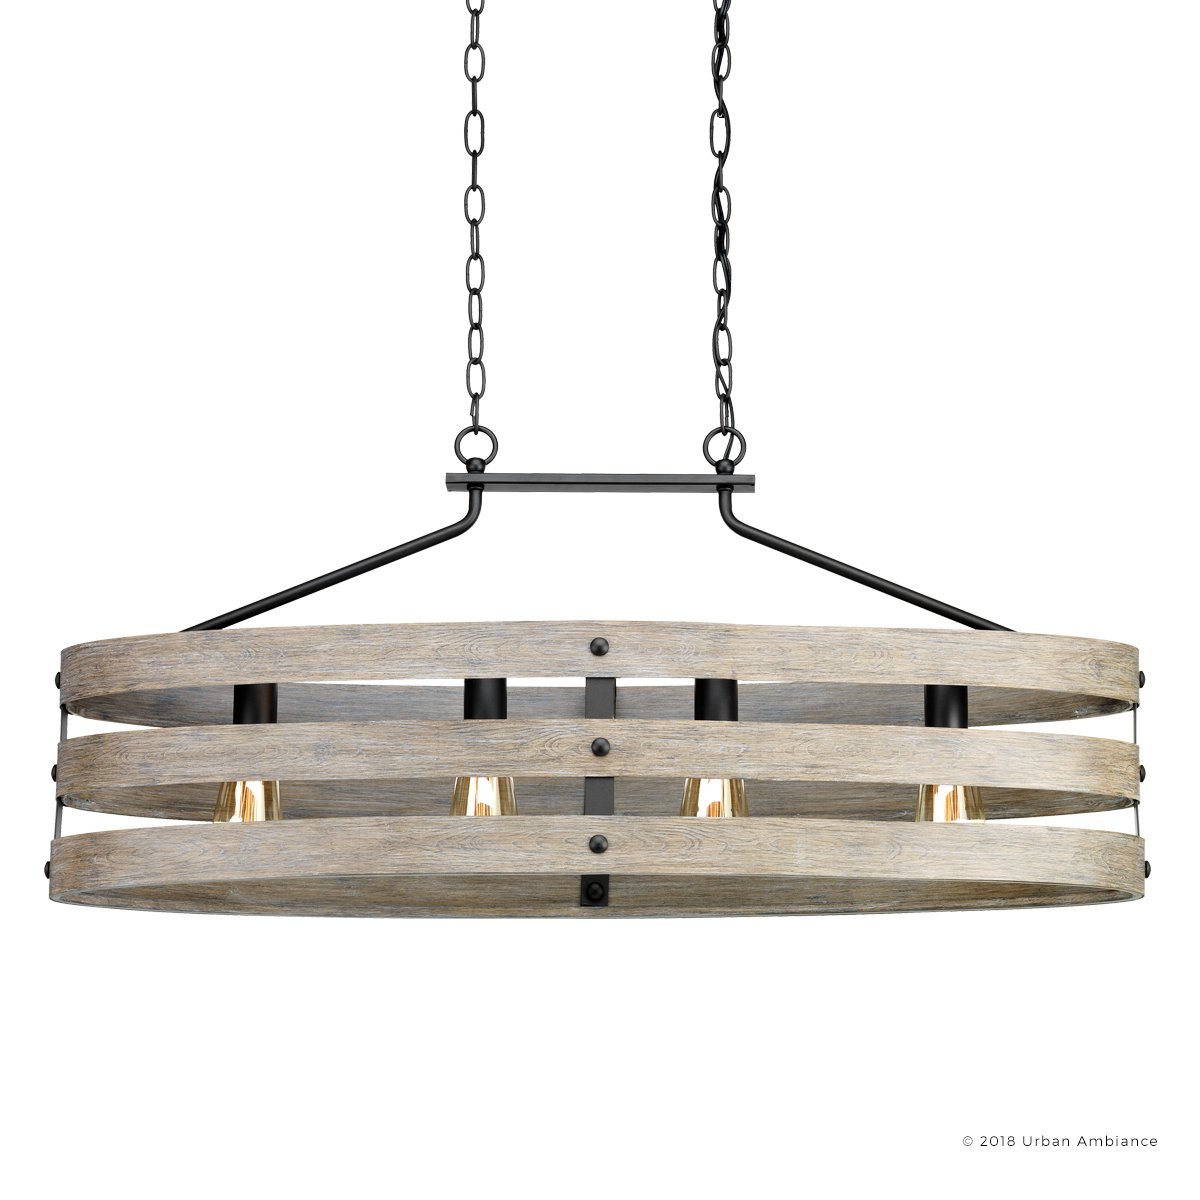 Luxury Modern Farmhouse Chandelier, Large Size: 17''H x 38.5''W, with Rustic Style Elements, Charcoal Finish, UHP2476 from The Adelaide Collection by Urban Ambiance by Urban Ambiance